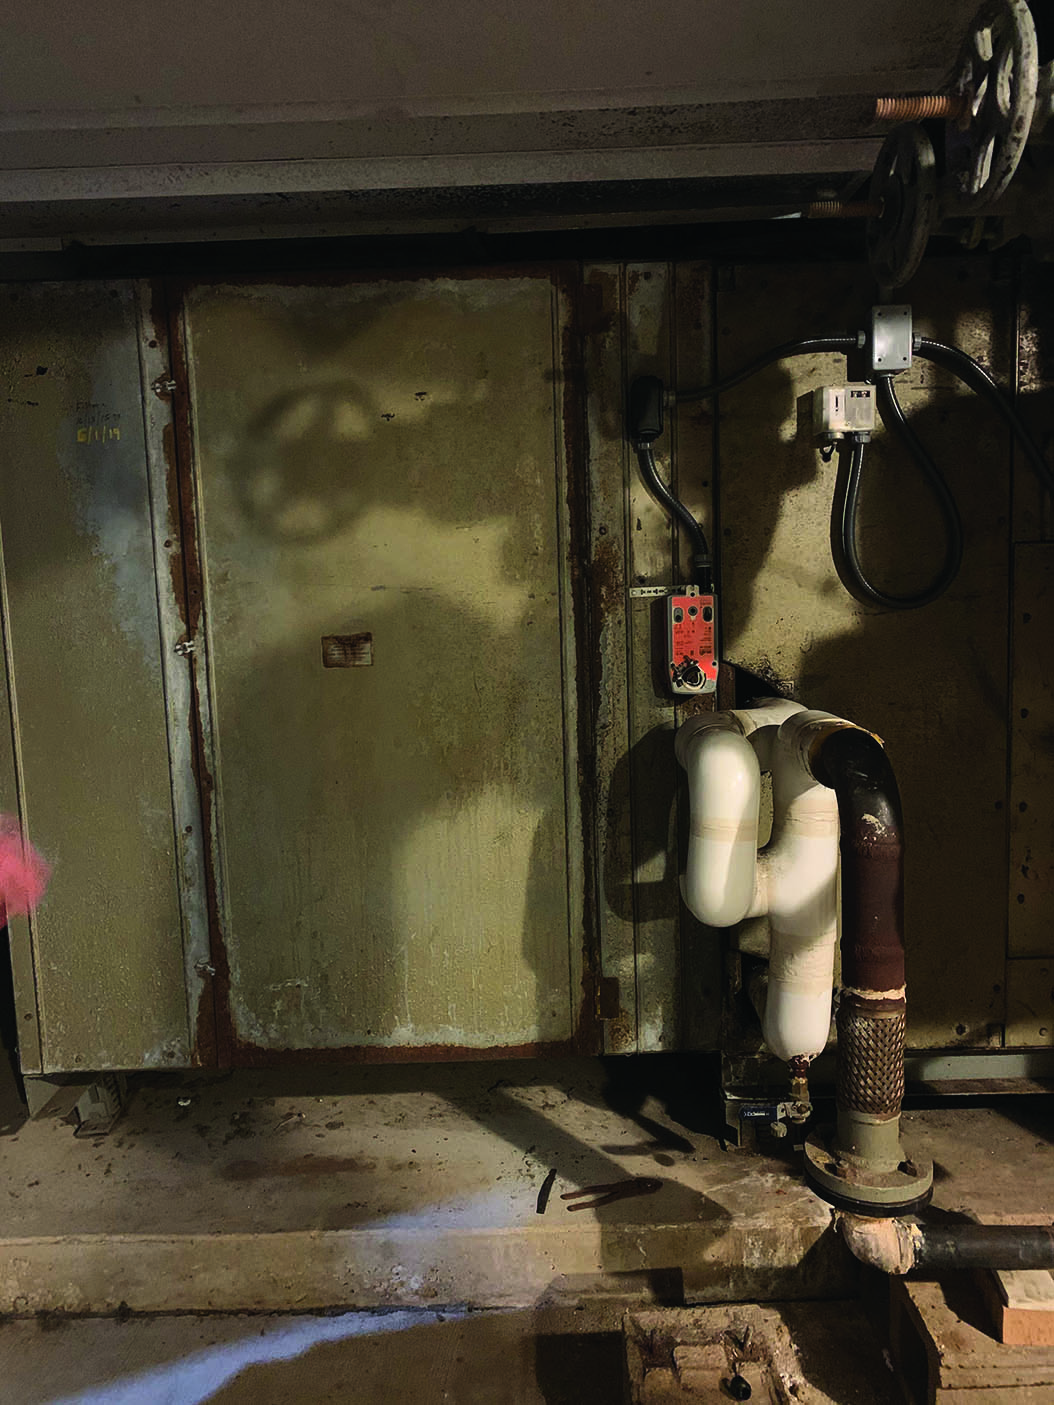 Corrosion and damage in the pool room.